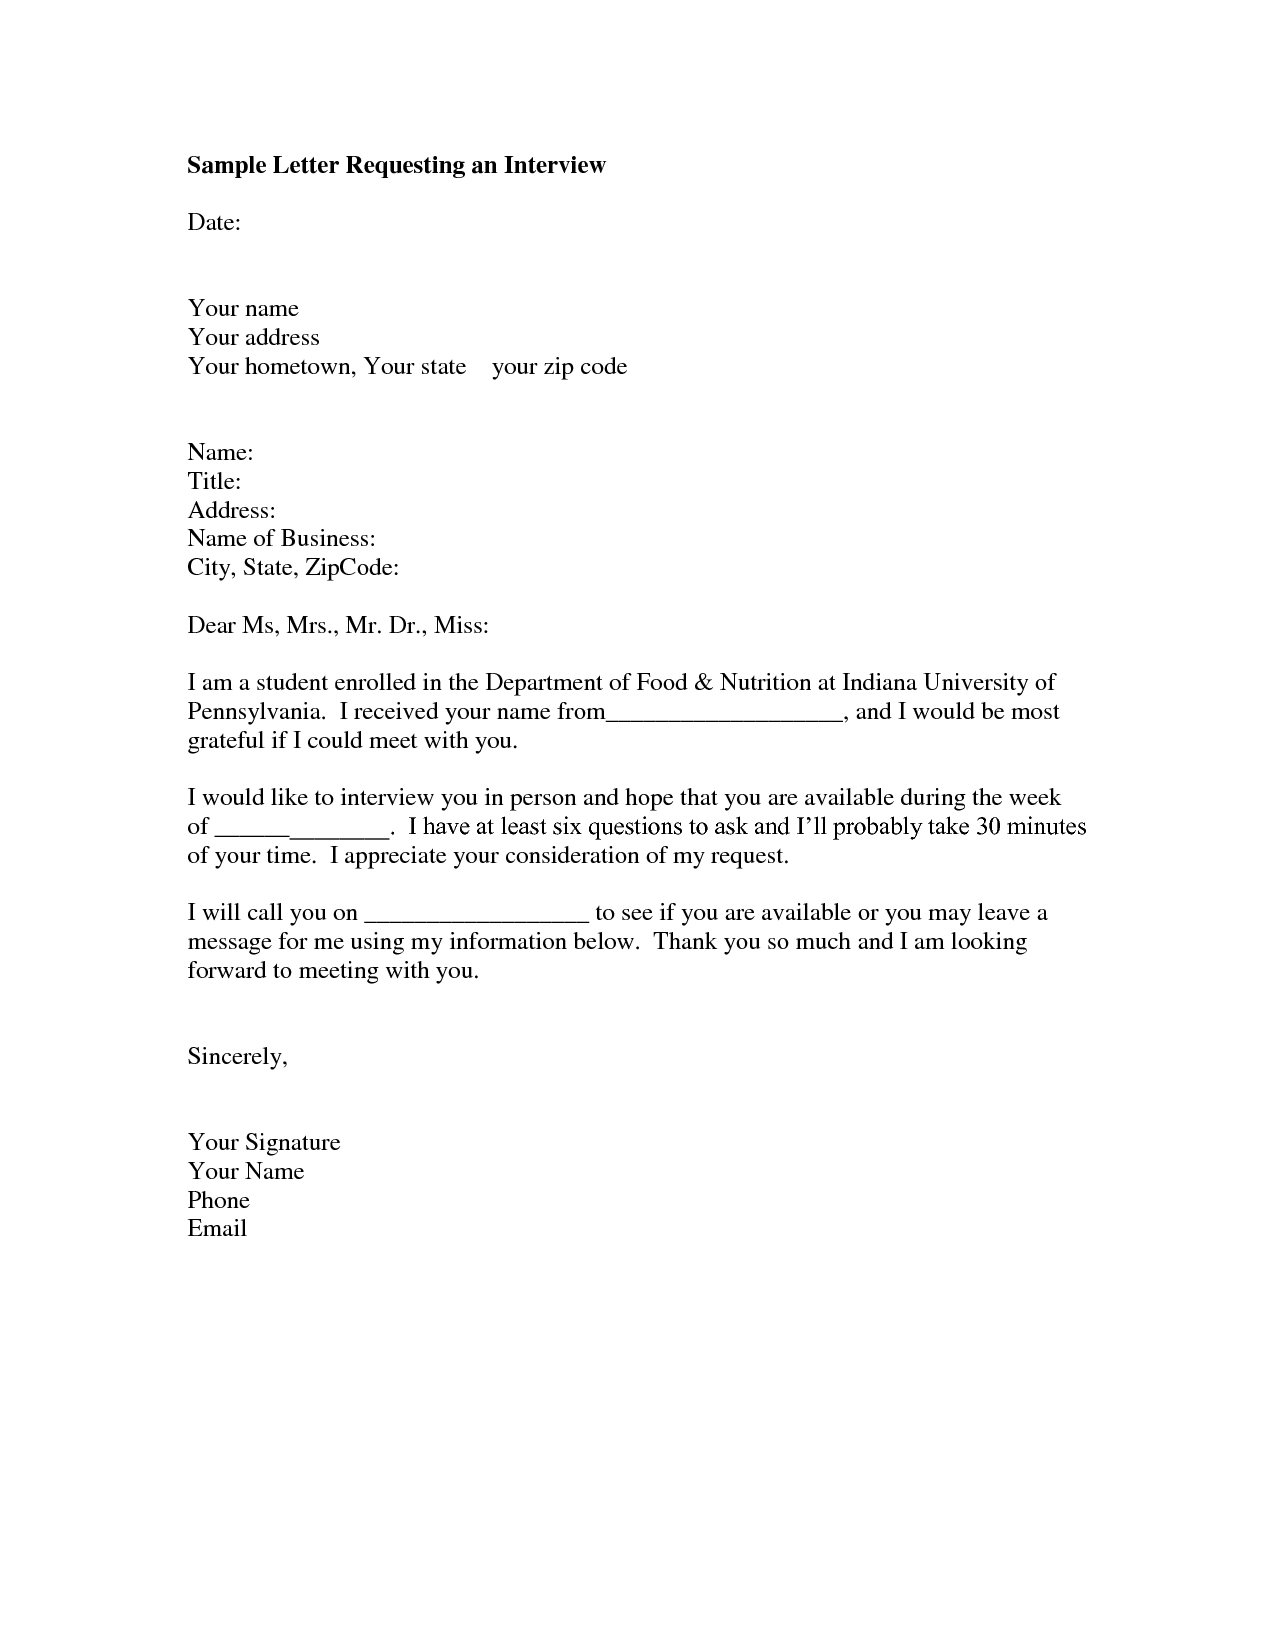 Interview request letter sample format of a letter you can use to interview request letter sample format of a letter you can use to request an interview with a prospecitive employer altavistaventures Image collections